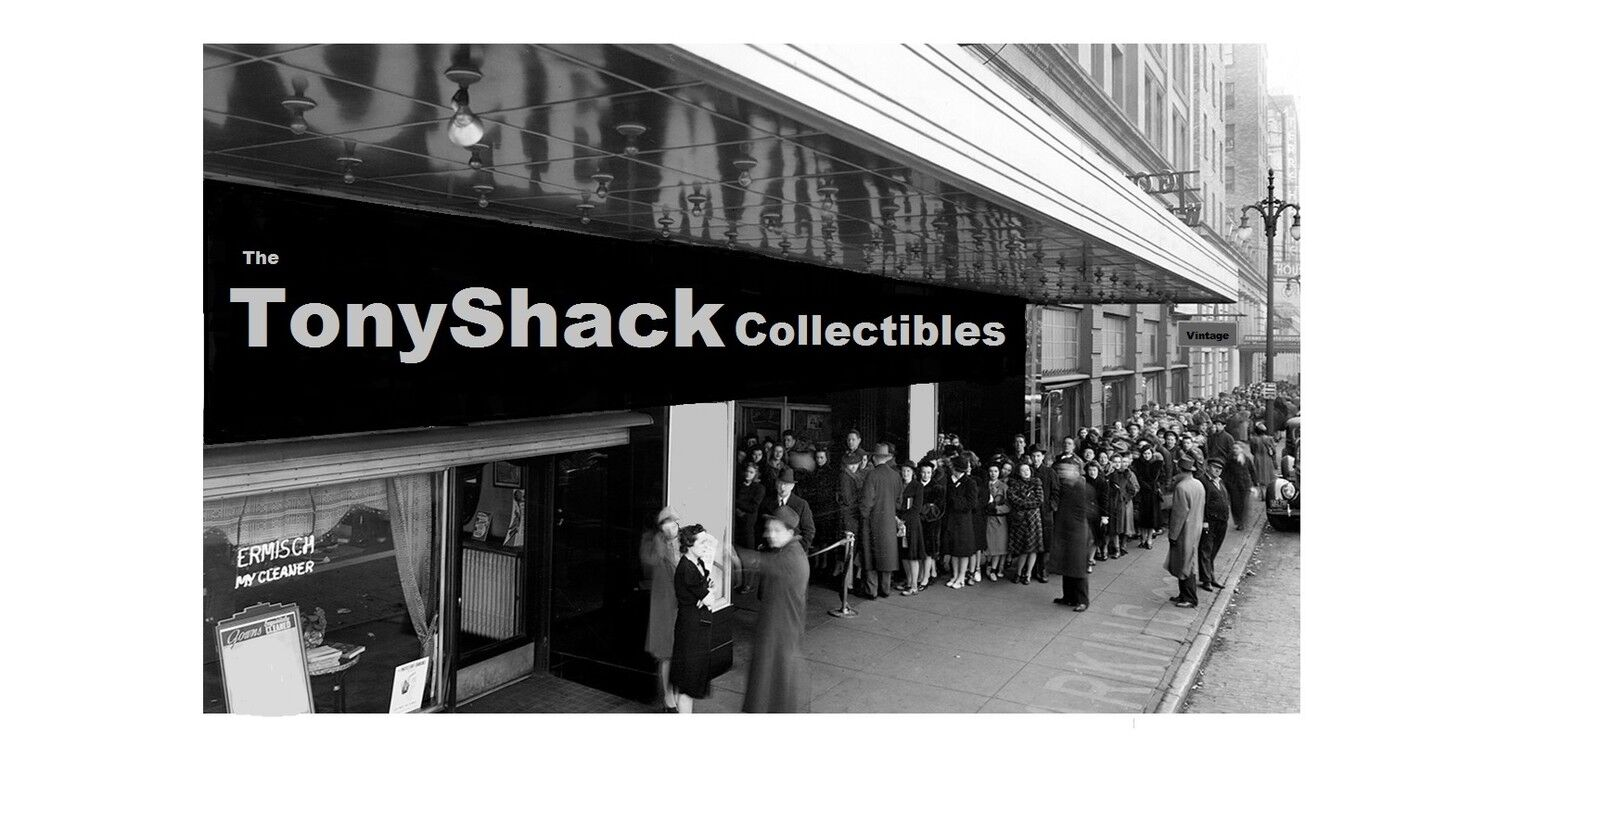 TonyShack Collectibles and Vintage